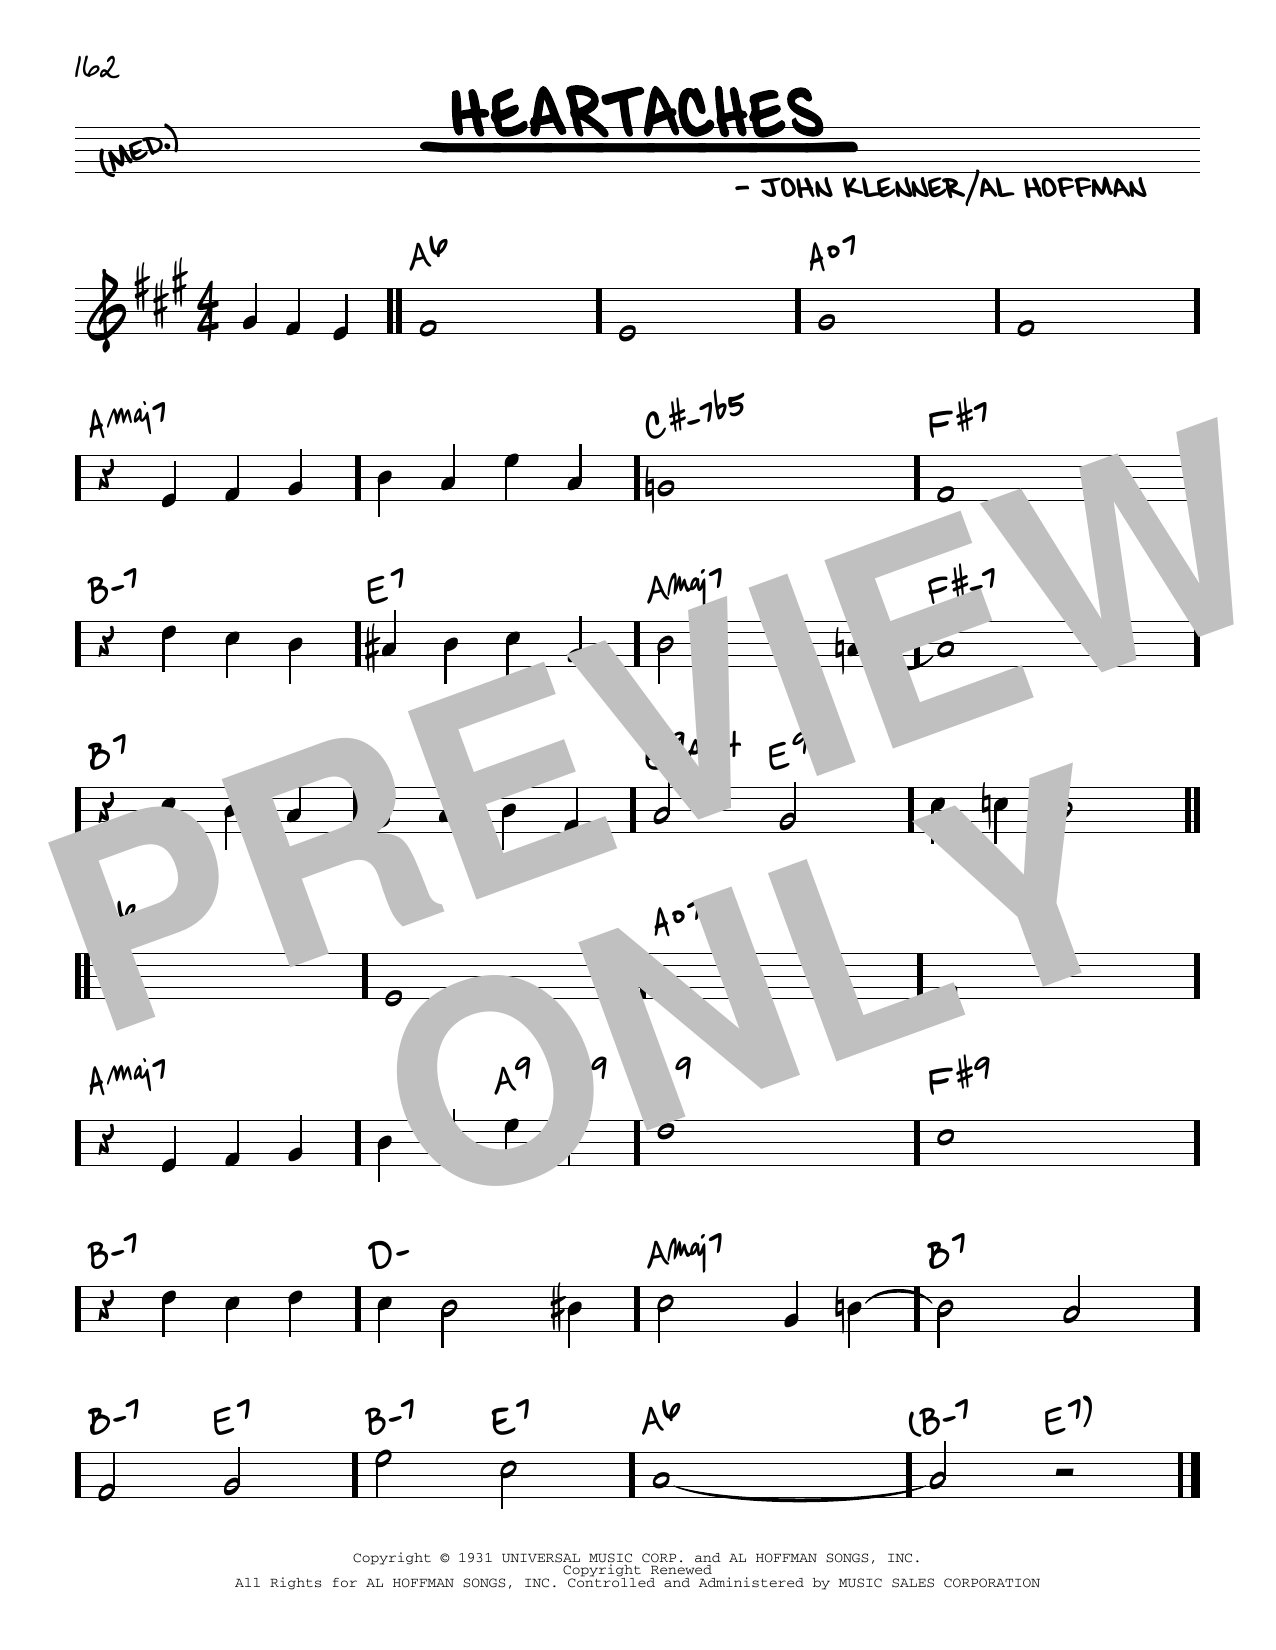 Download Al Hoffman and John Klenner 'Heartaches' Digital Sheet Music Notes & Chords and start playing in minutes